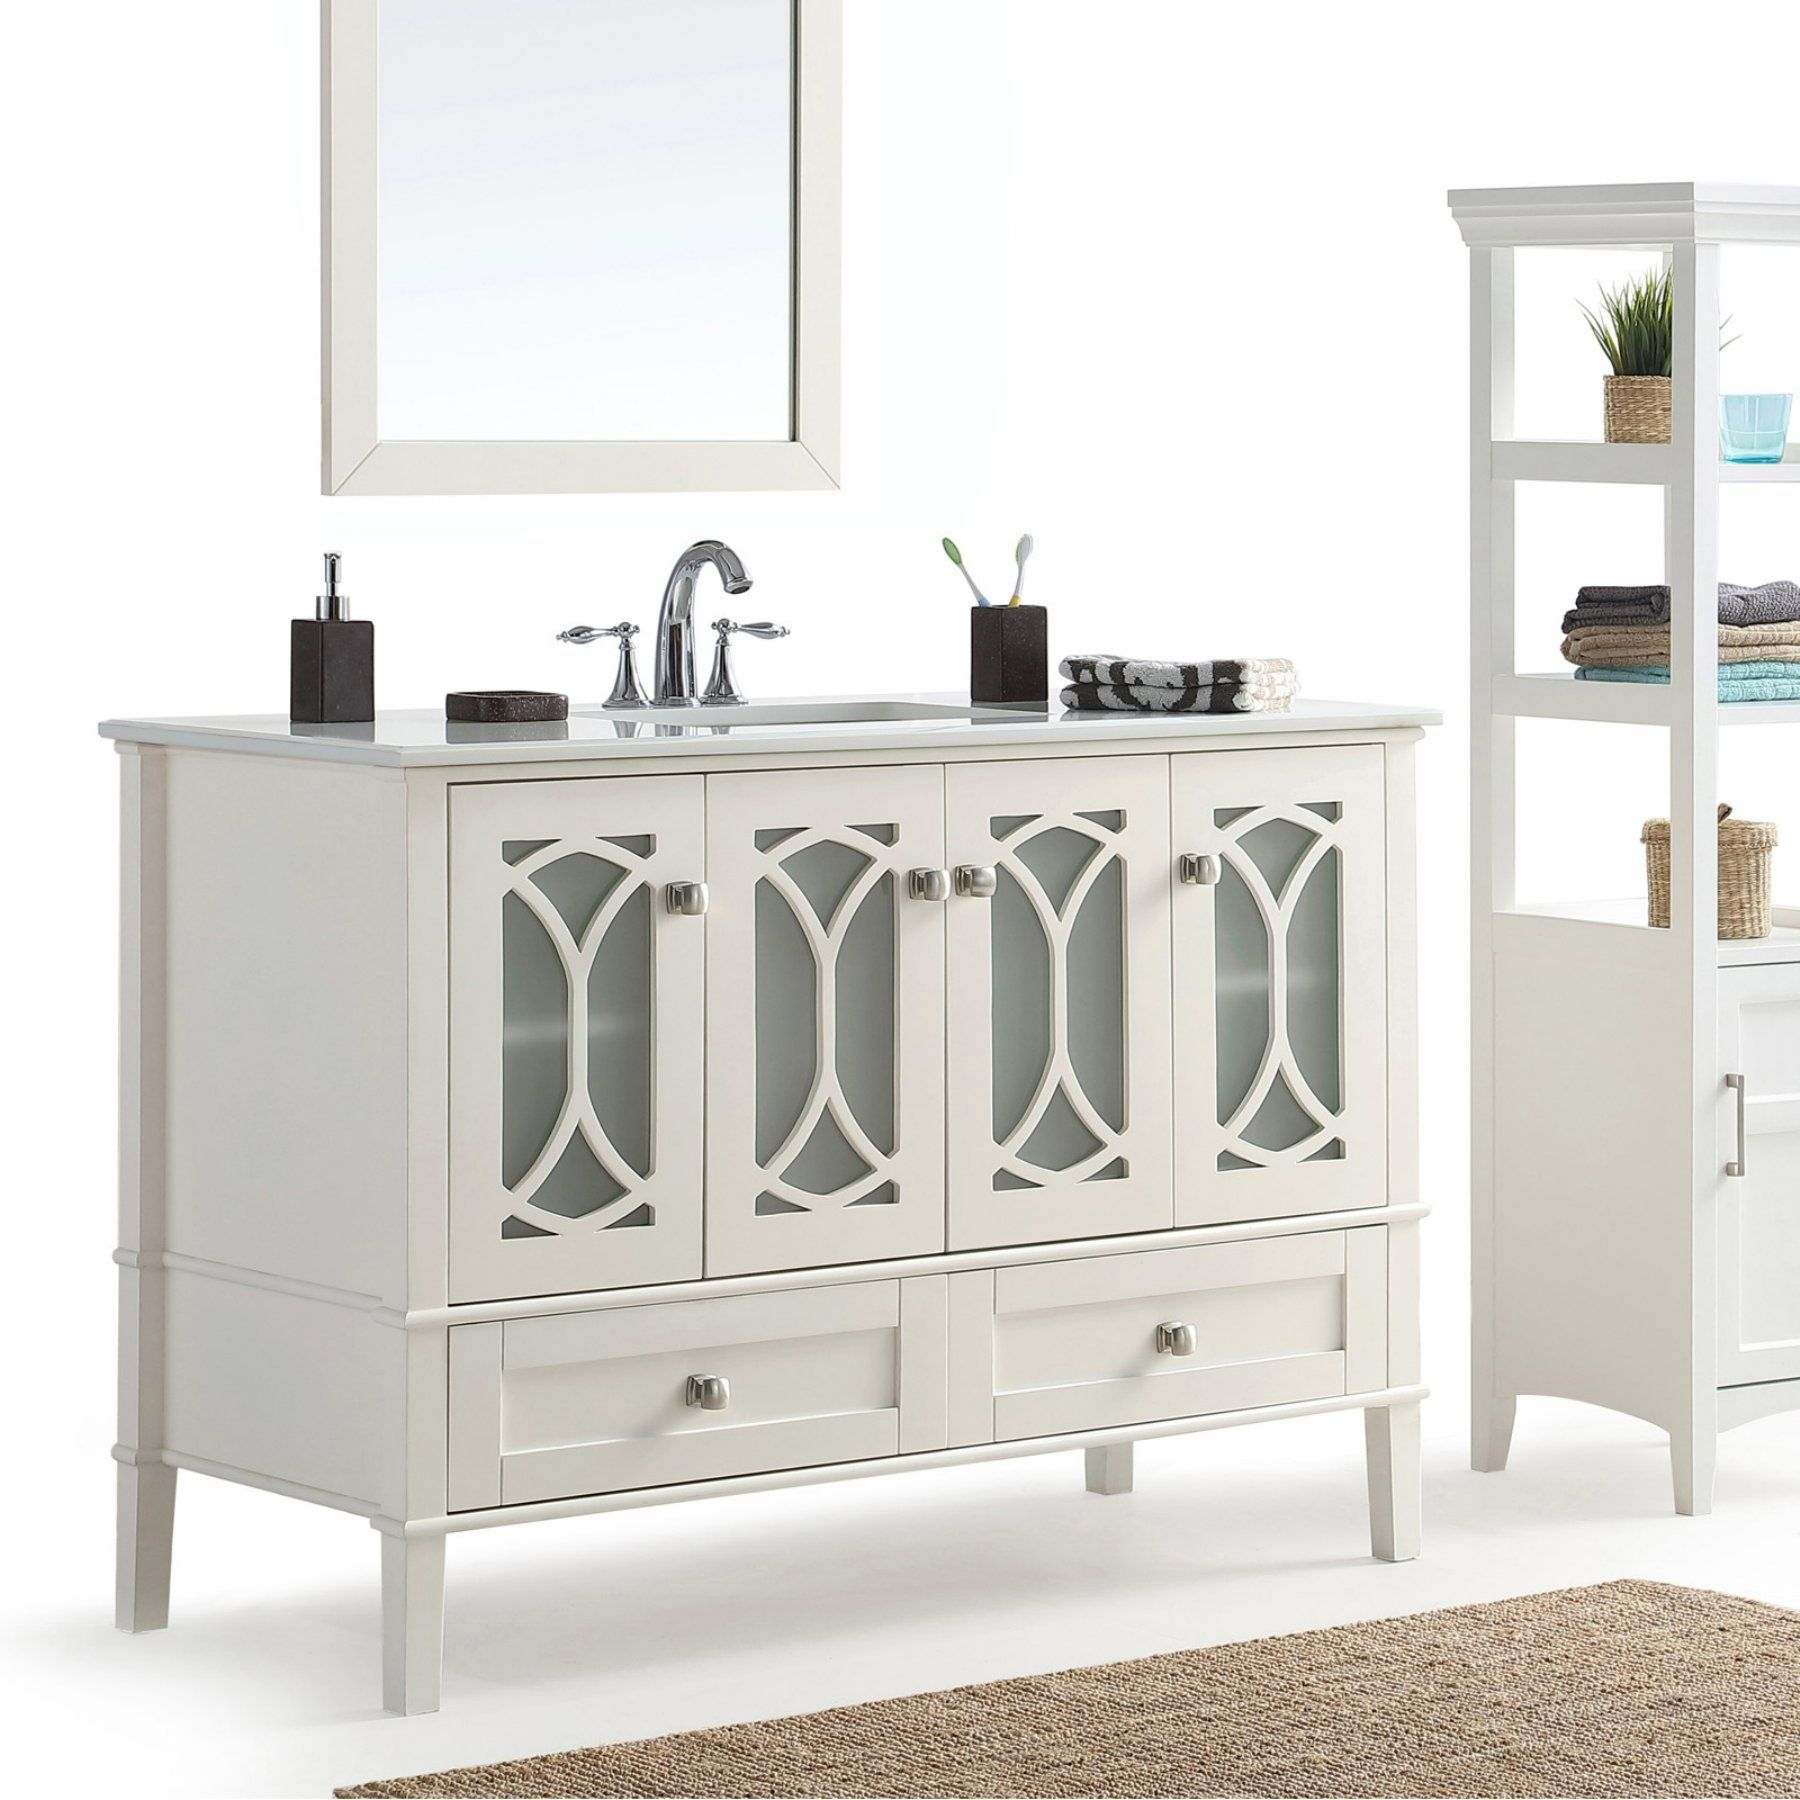 Simpli Home Paige 48 in. Bath Vanity with White Quartz Marble Top - AXCVPAW-48